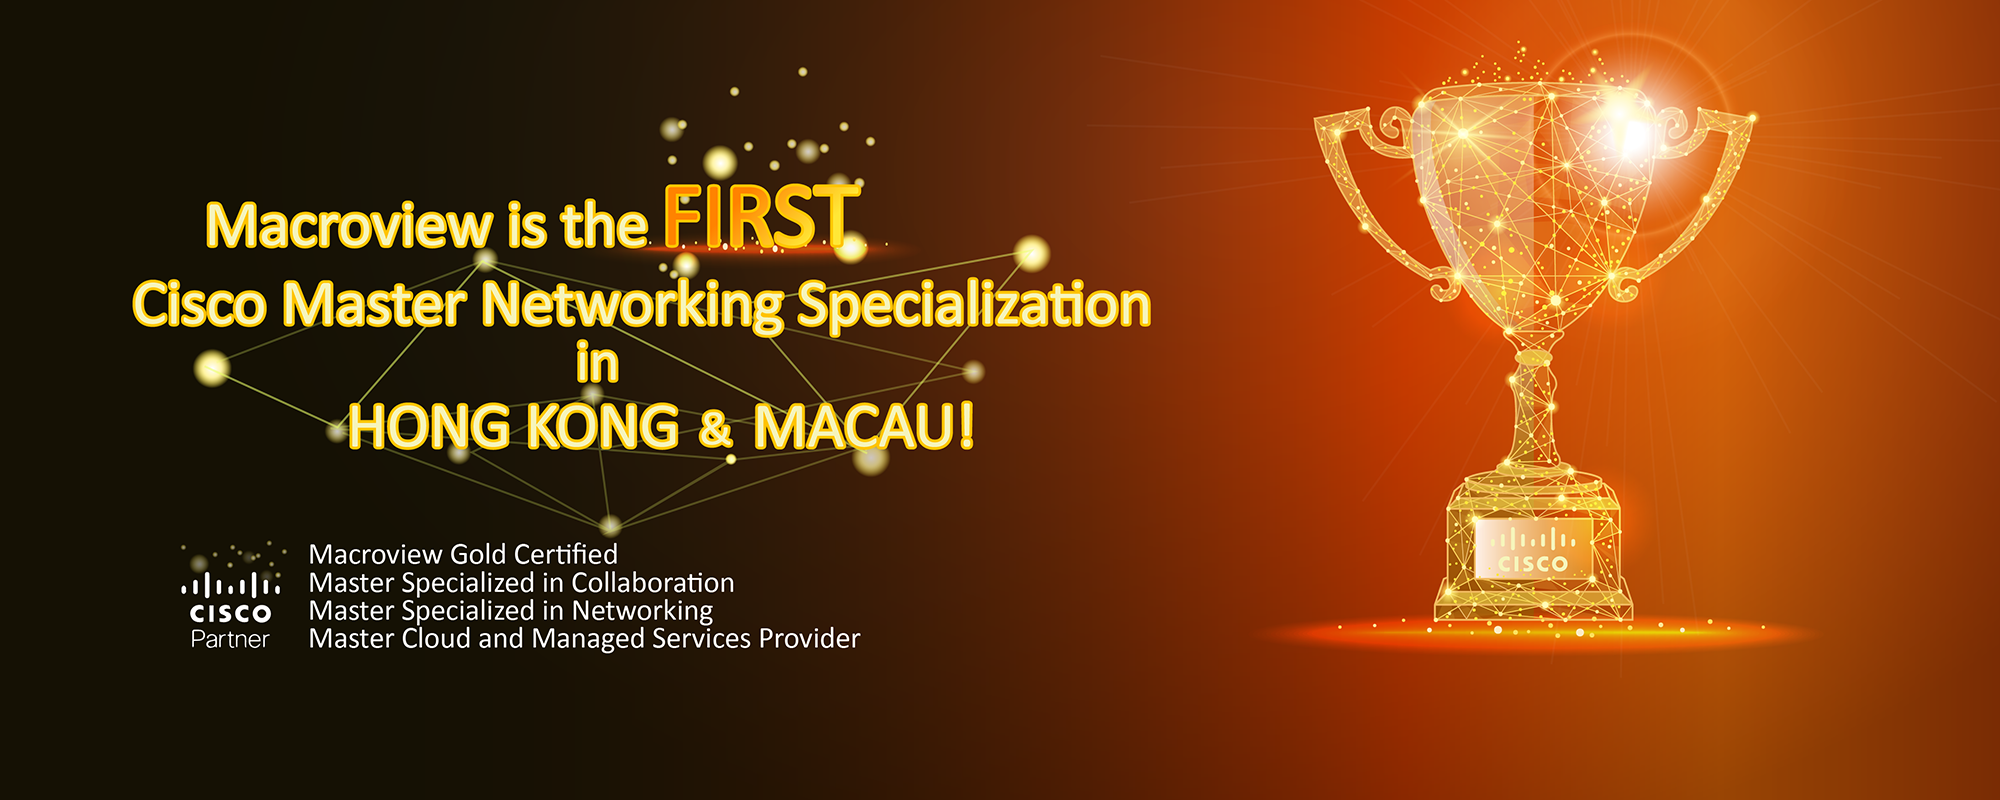 Macroview is the first Cisco Master Networking Specialization in Hong Kong and Macau